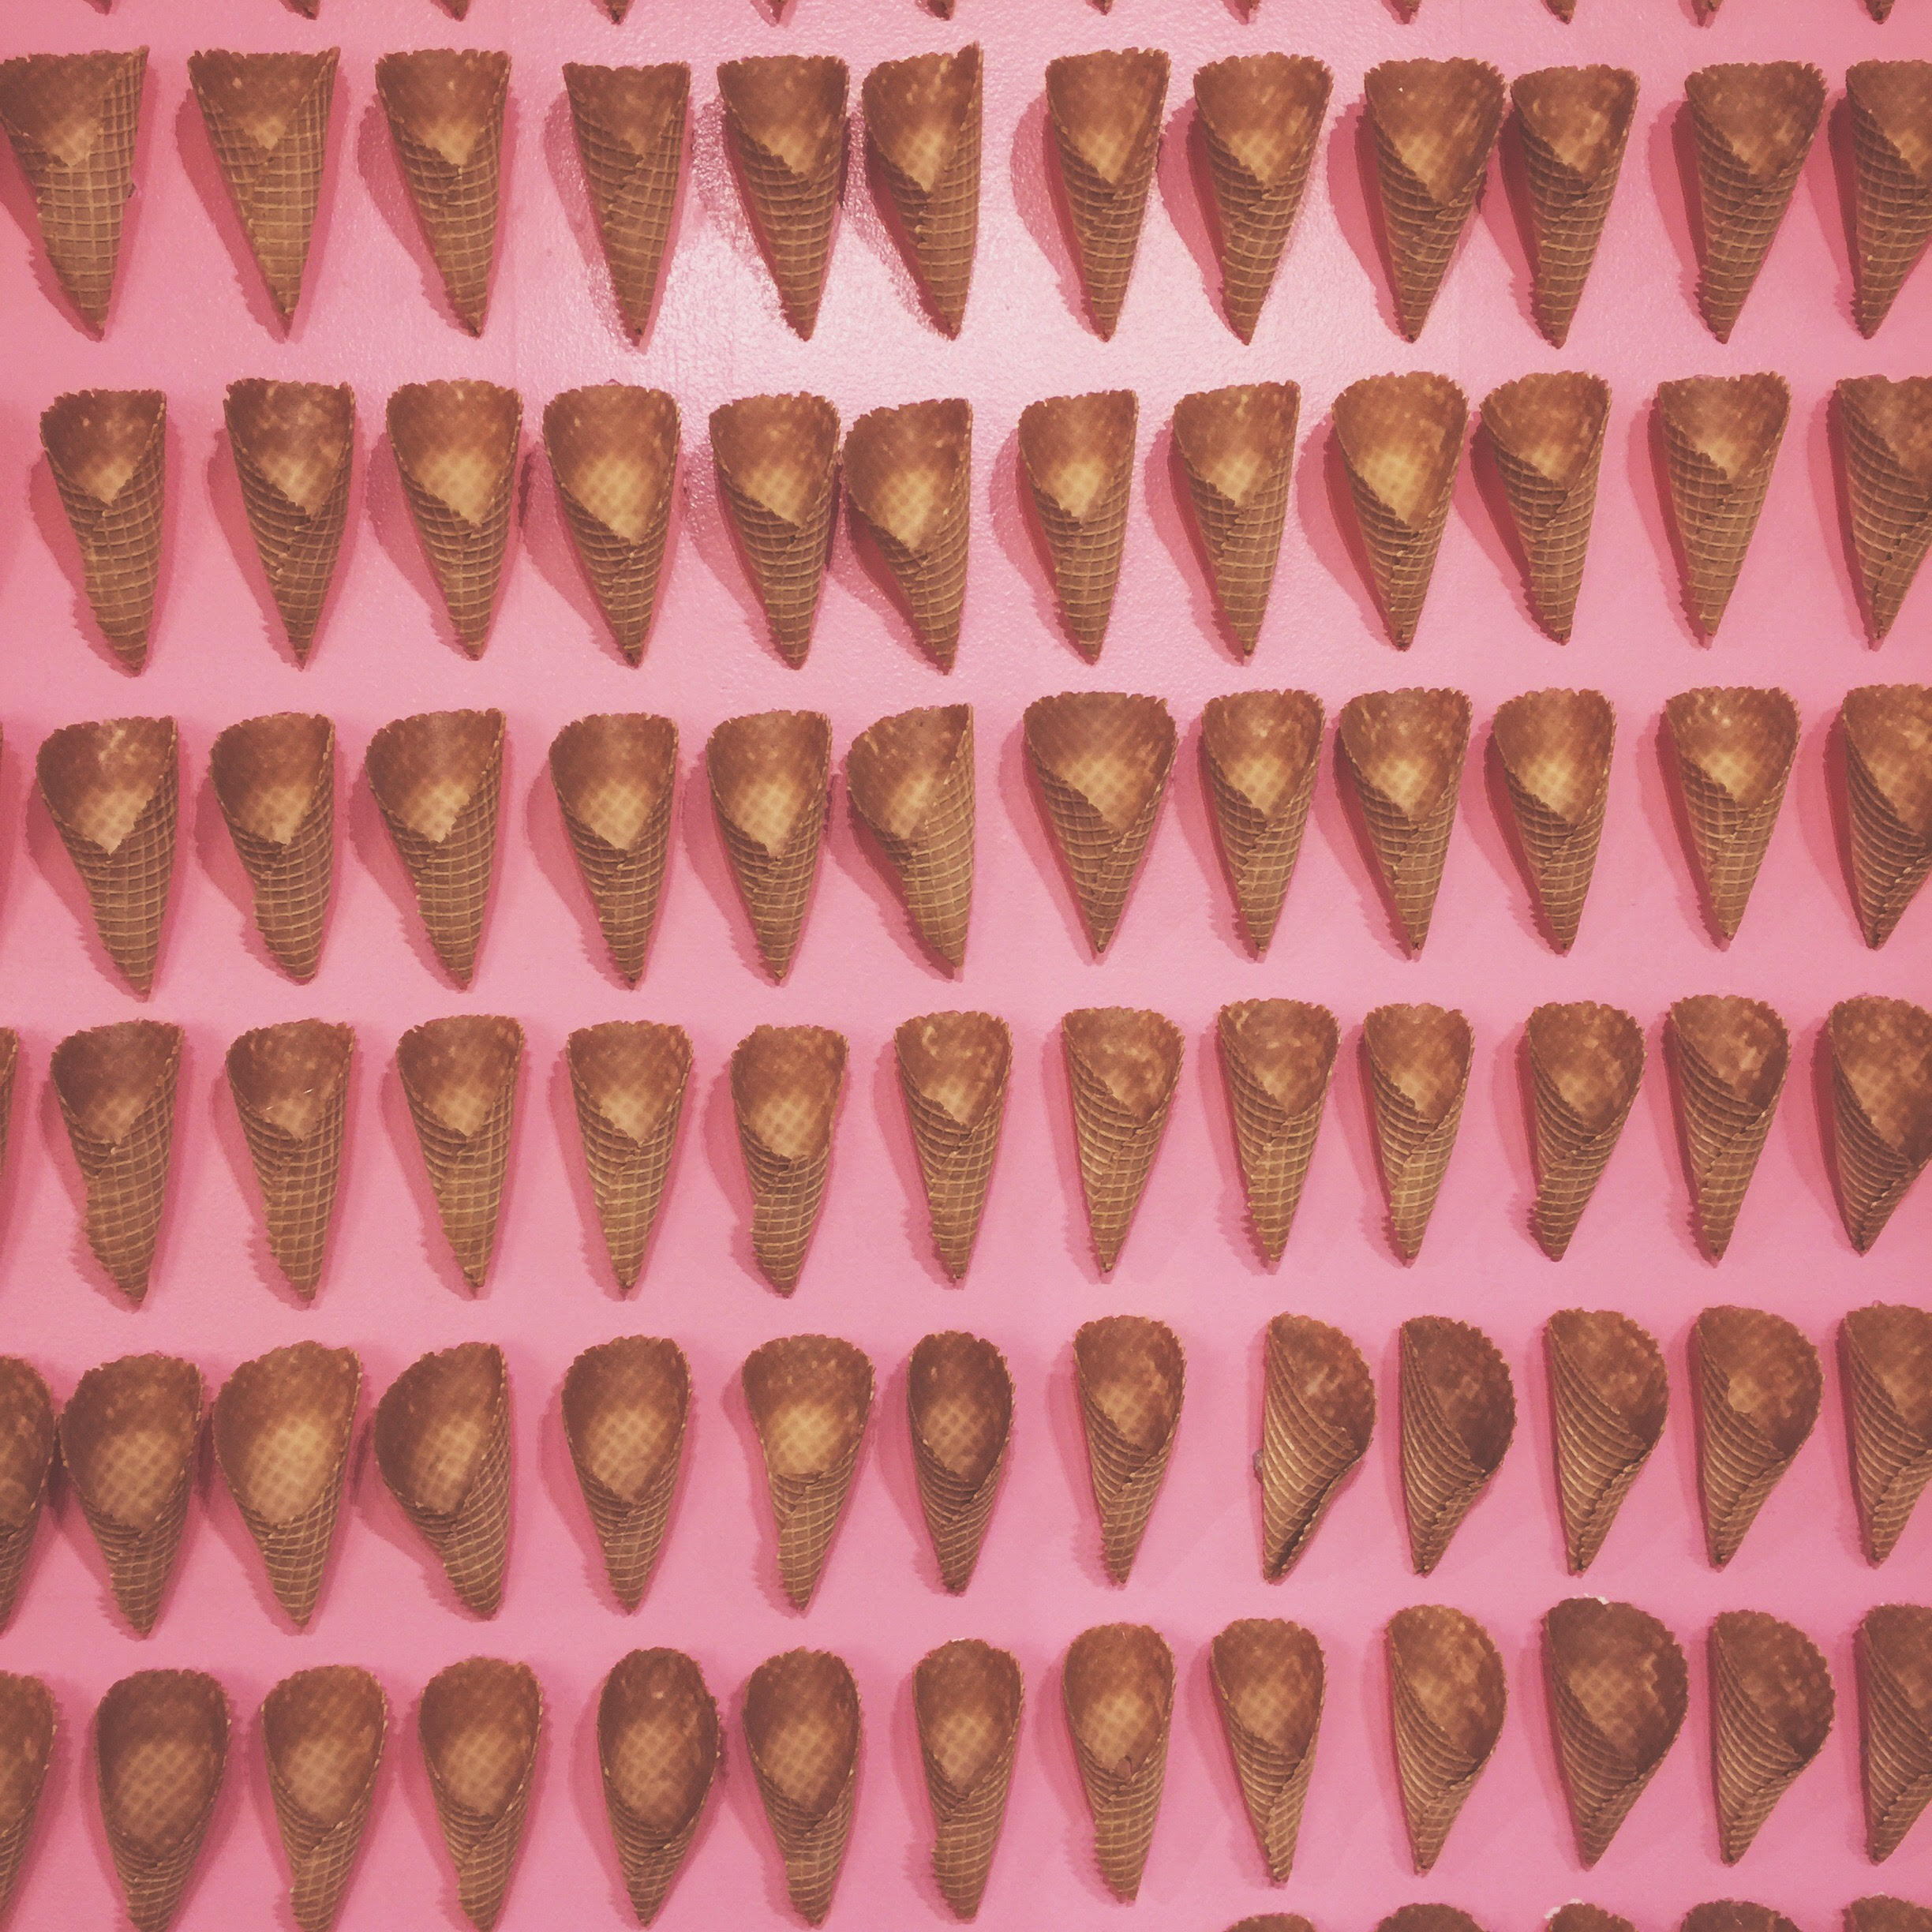 ice cream cones at the museum of ice cream